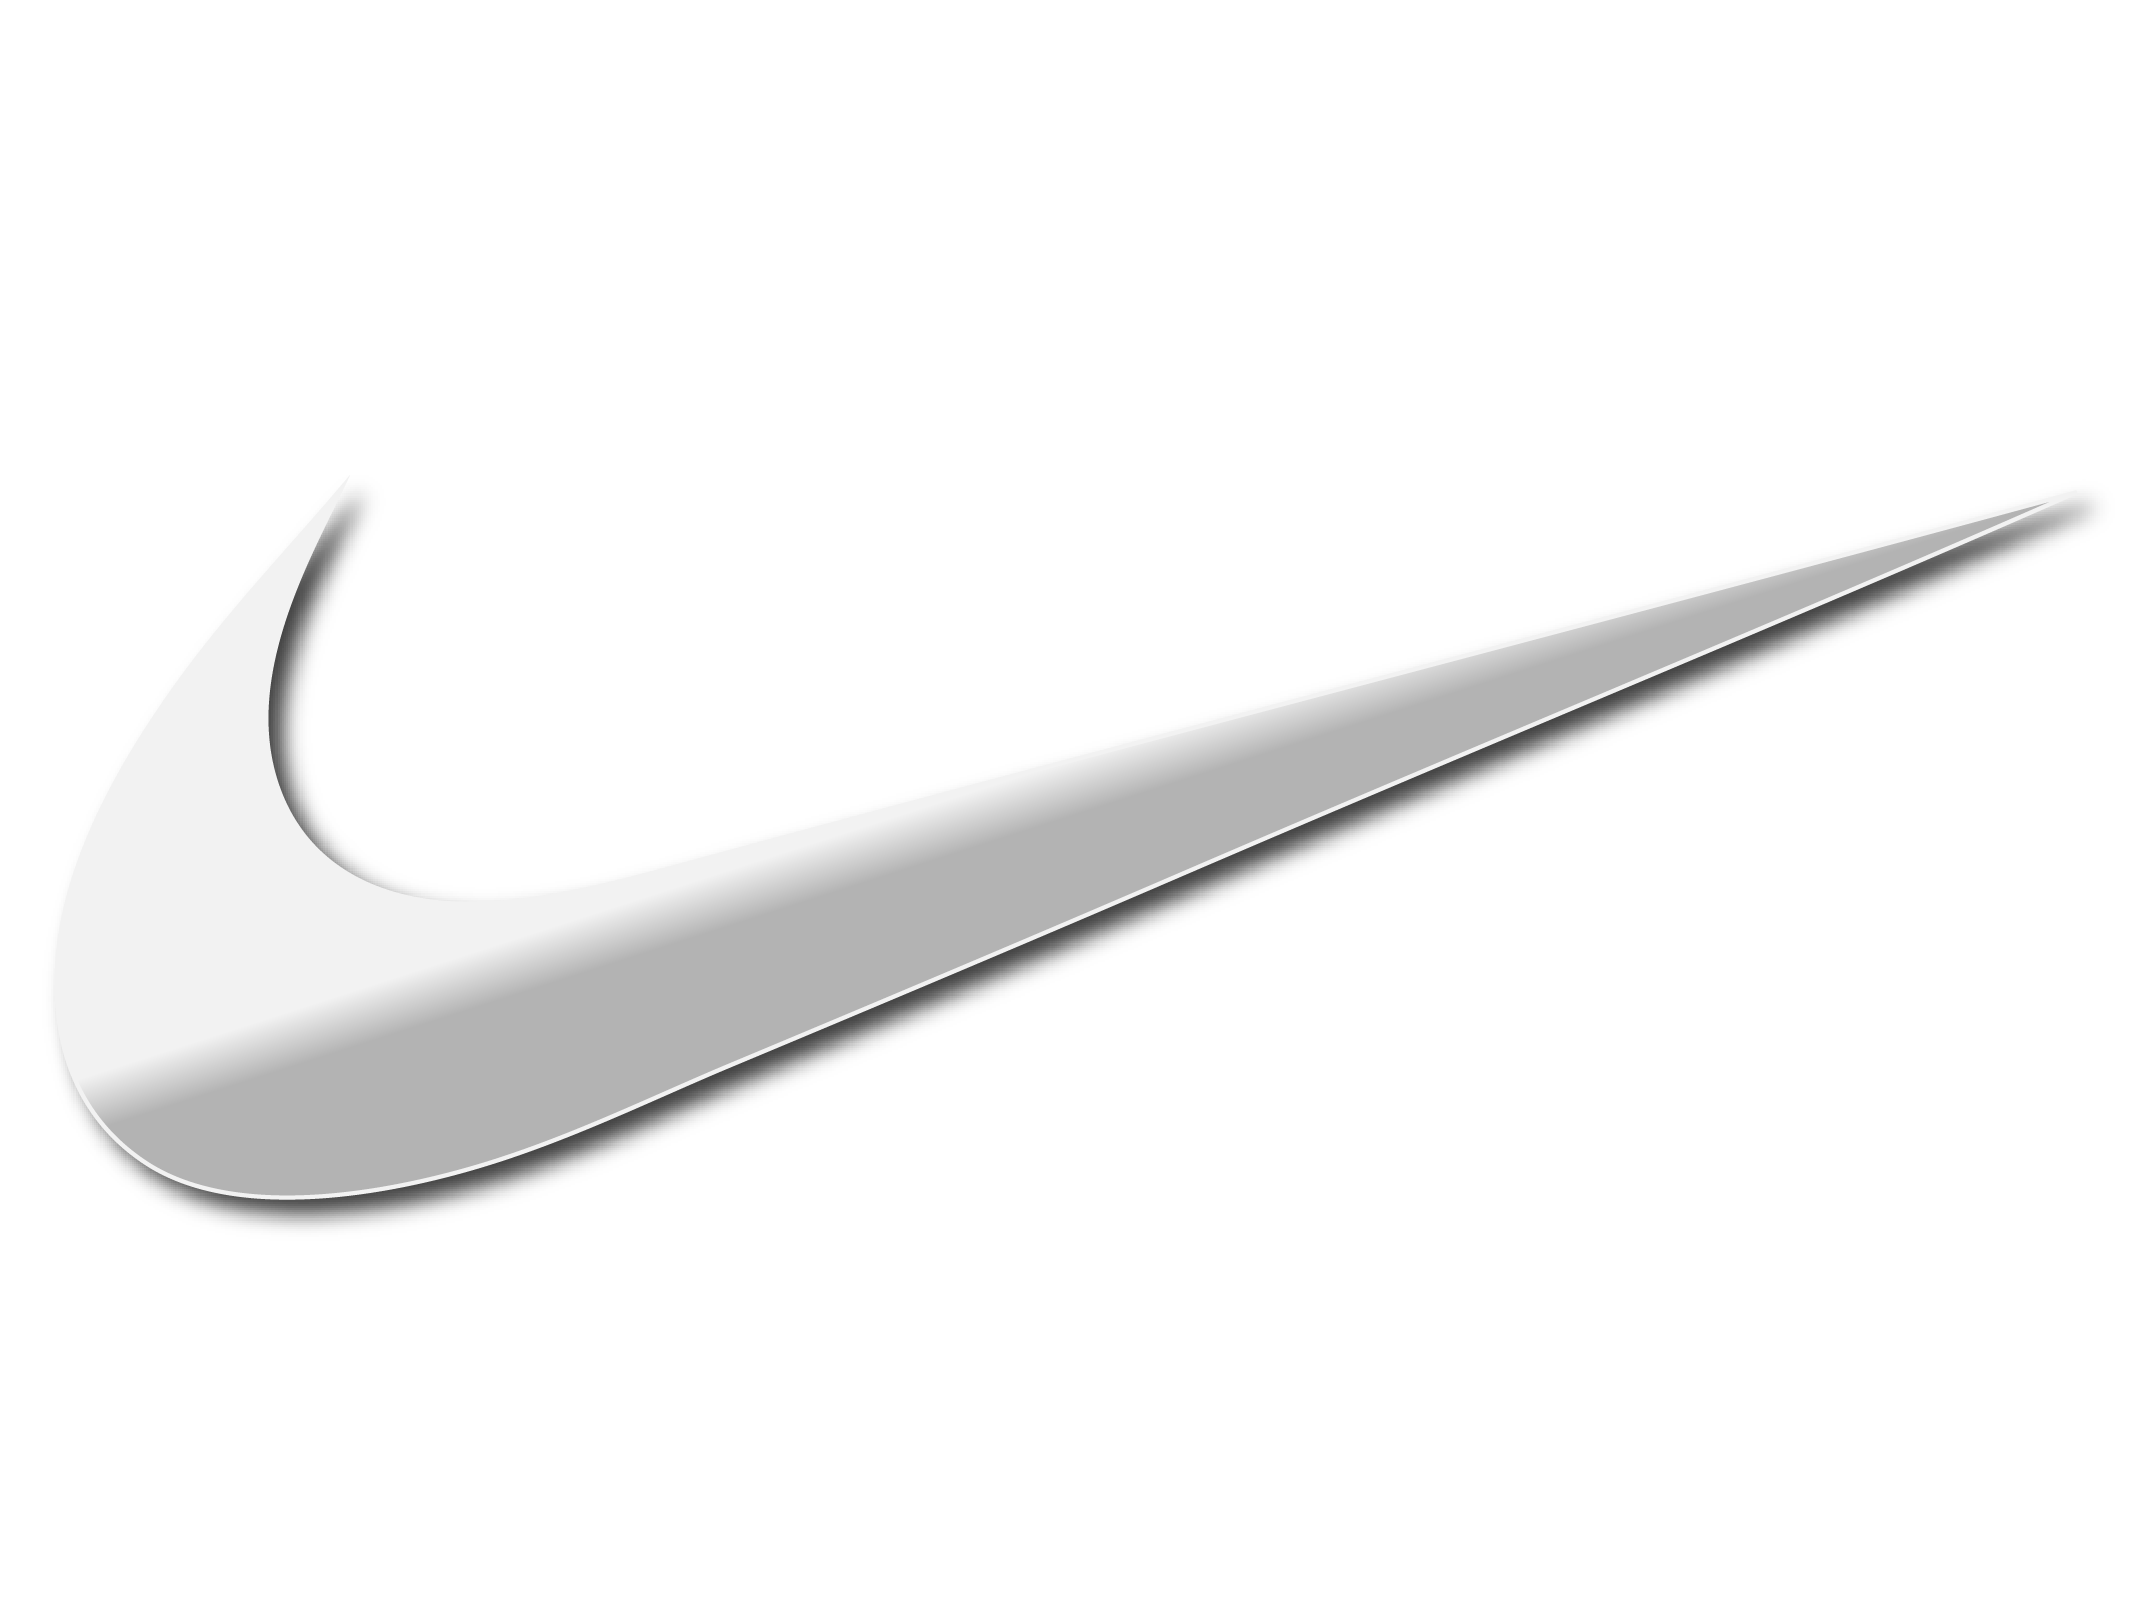 Nike logo vector png. Hq transparent images pluspng